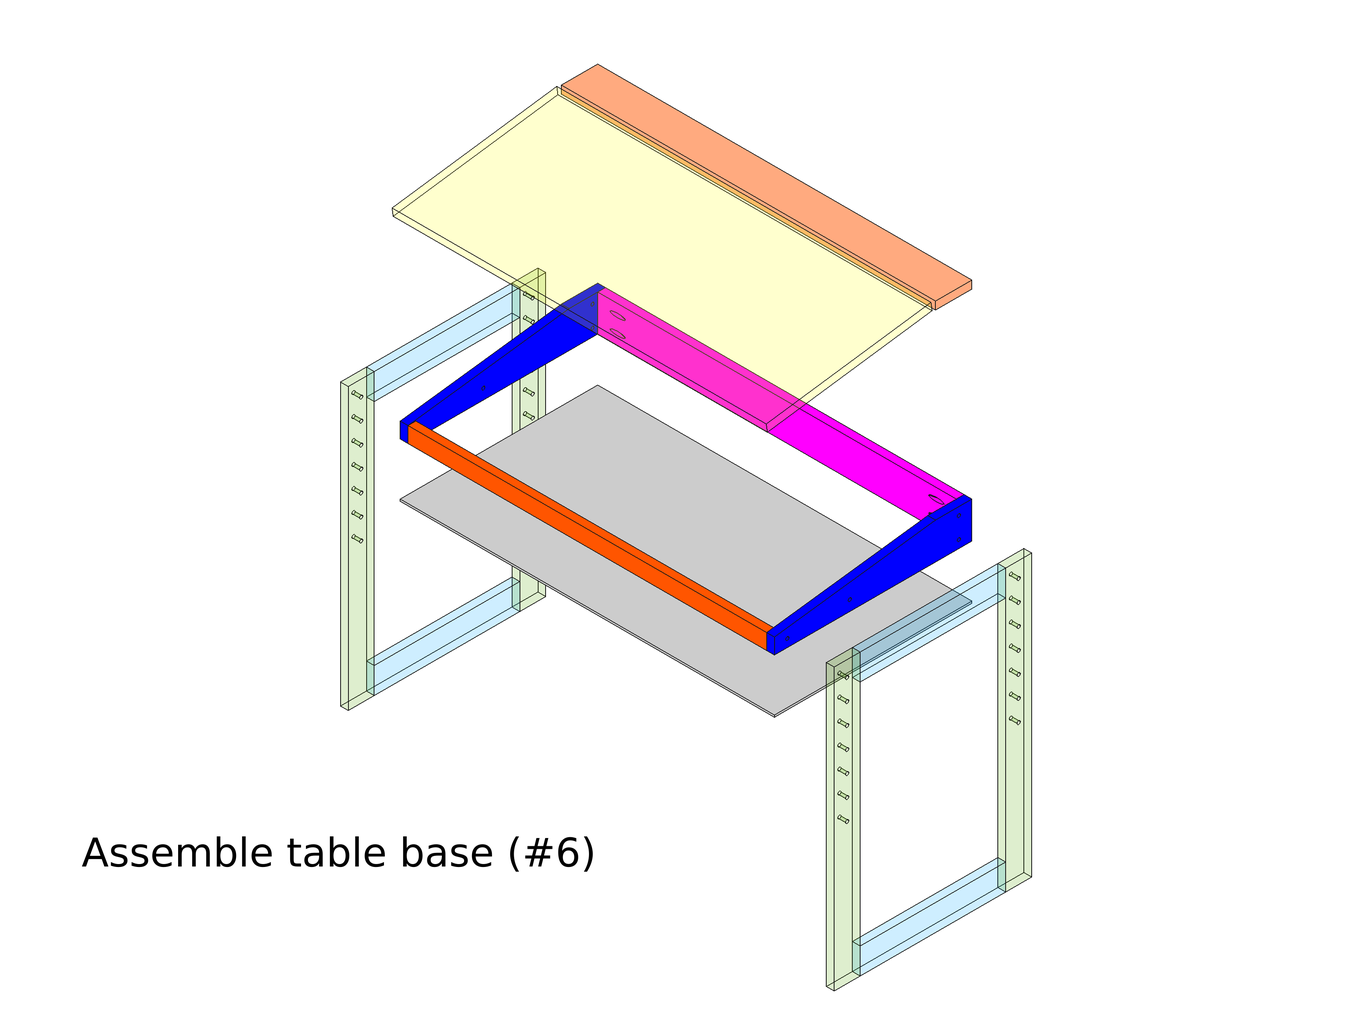 Assemble Table Base for Storage